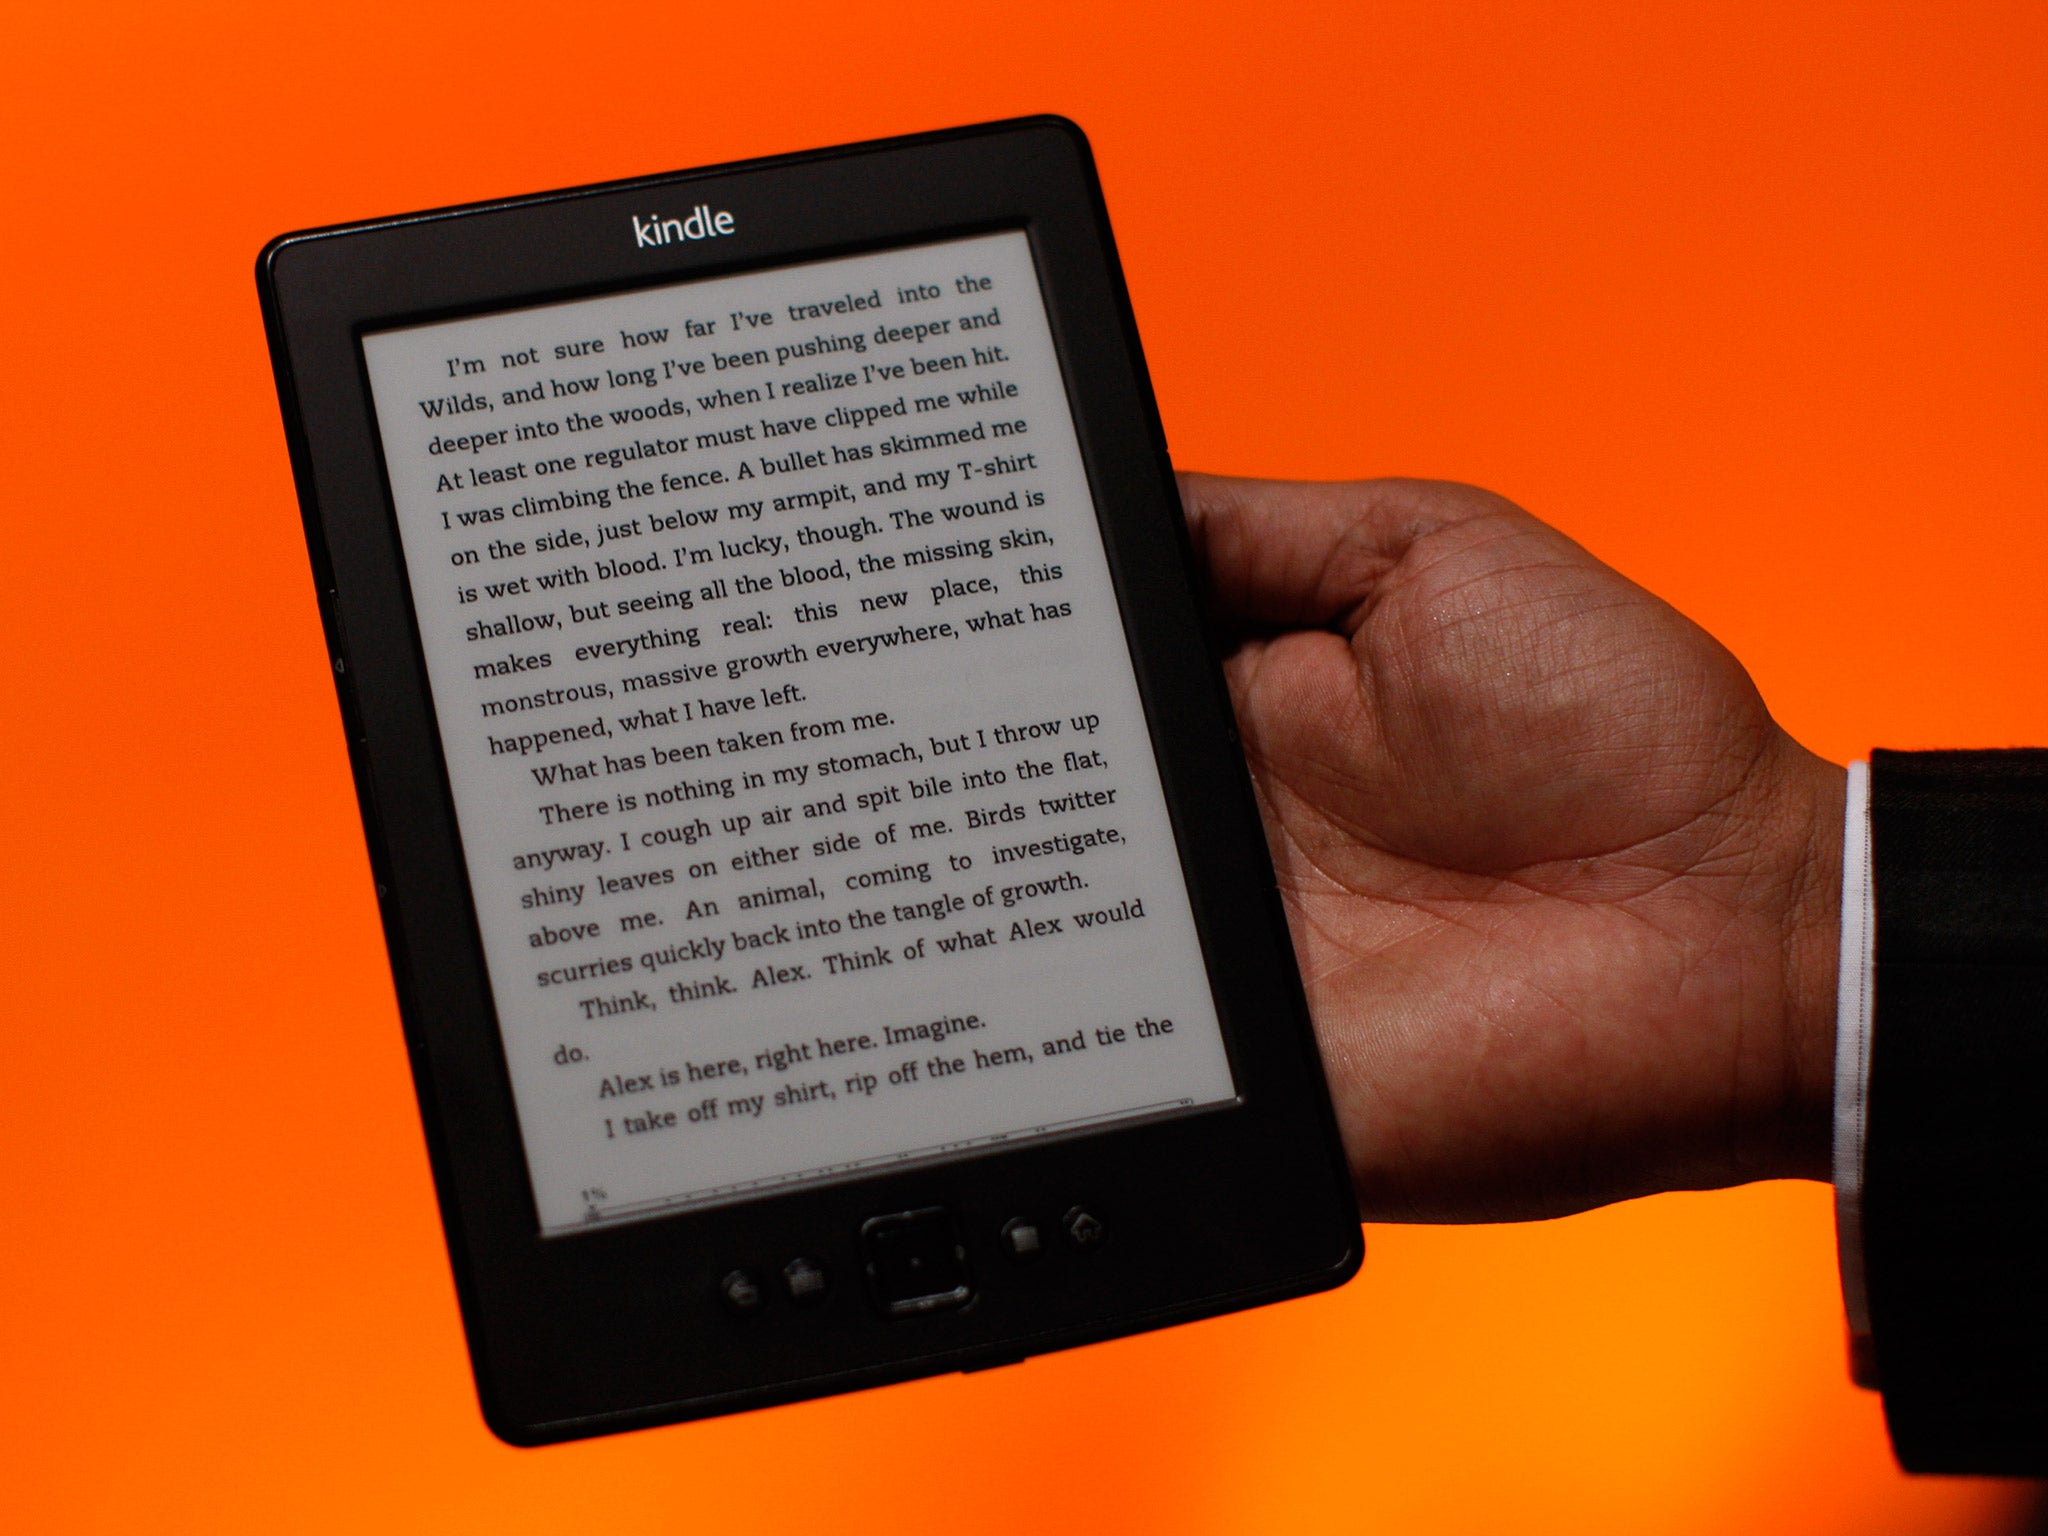 Clean Reader: New App Will 'clean Up' Bad Language In Ebooks  The  Independent